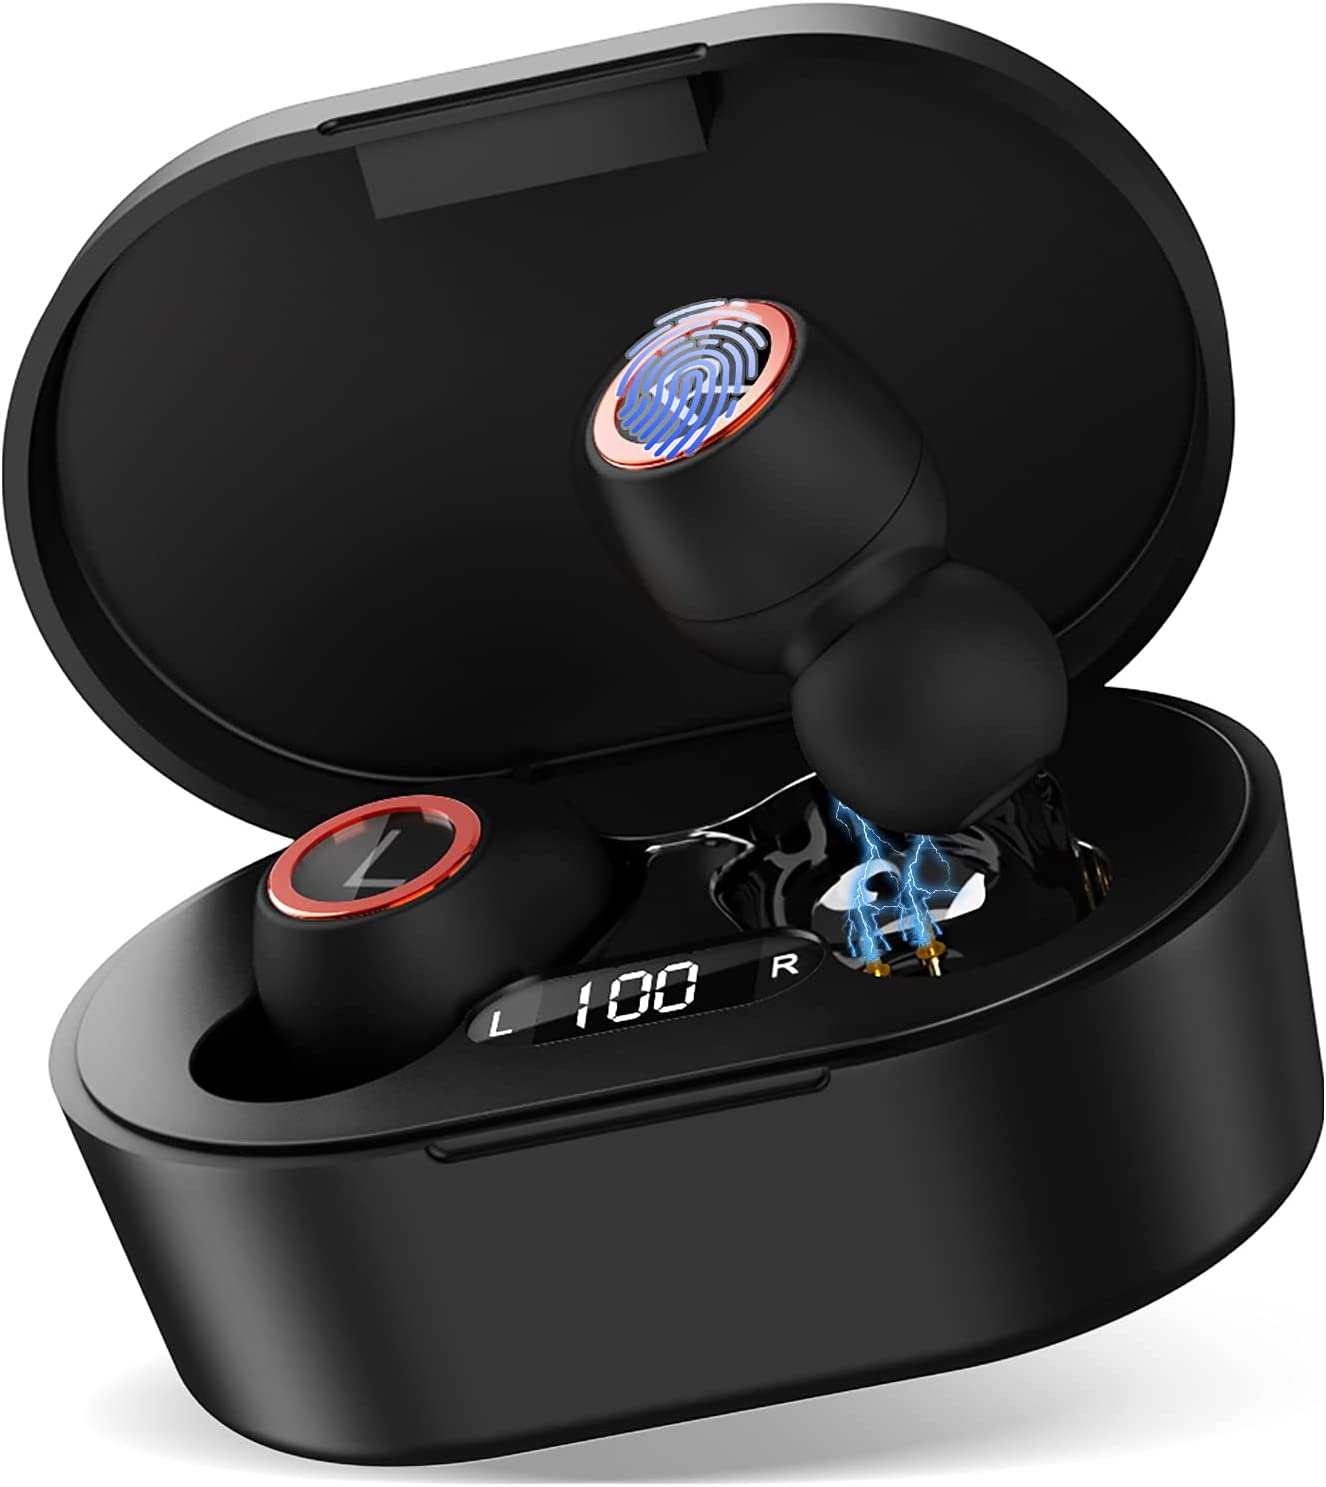 UX923 Wireless Earbuds Bluetooth Max 72% OFF 5.0 Headphones Premium Sport Factory outlet So